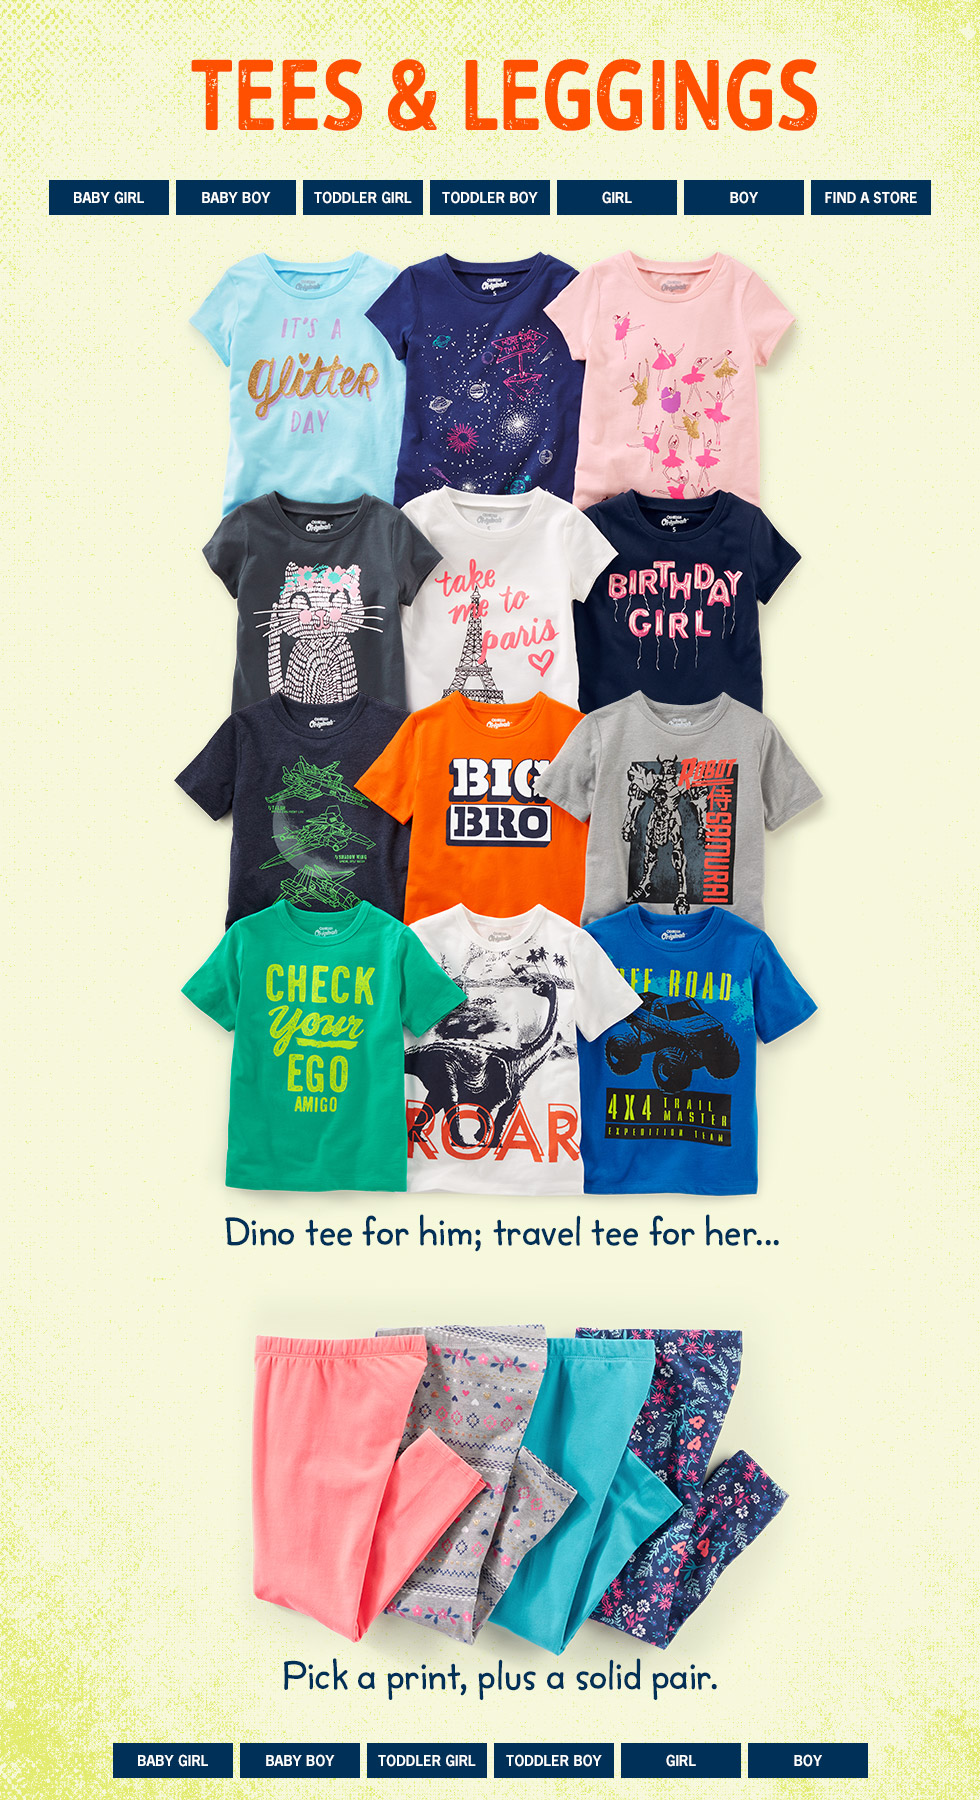 SPRING FOR IT! Stock up on tees and leggings. Dino tee for him; travel tee for her... Pick a print, plus a solid pair.